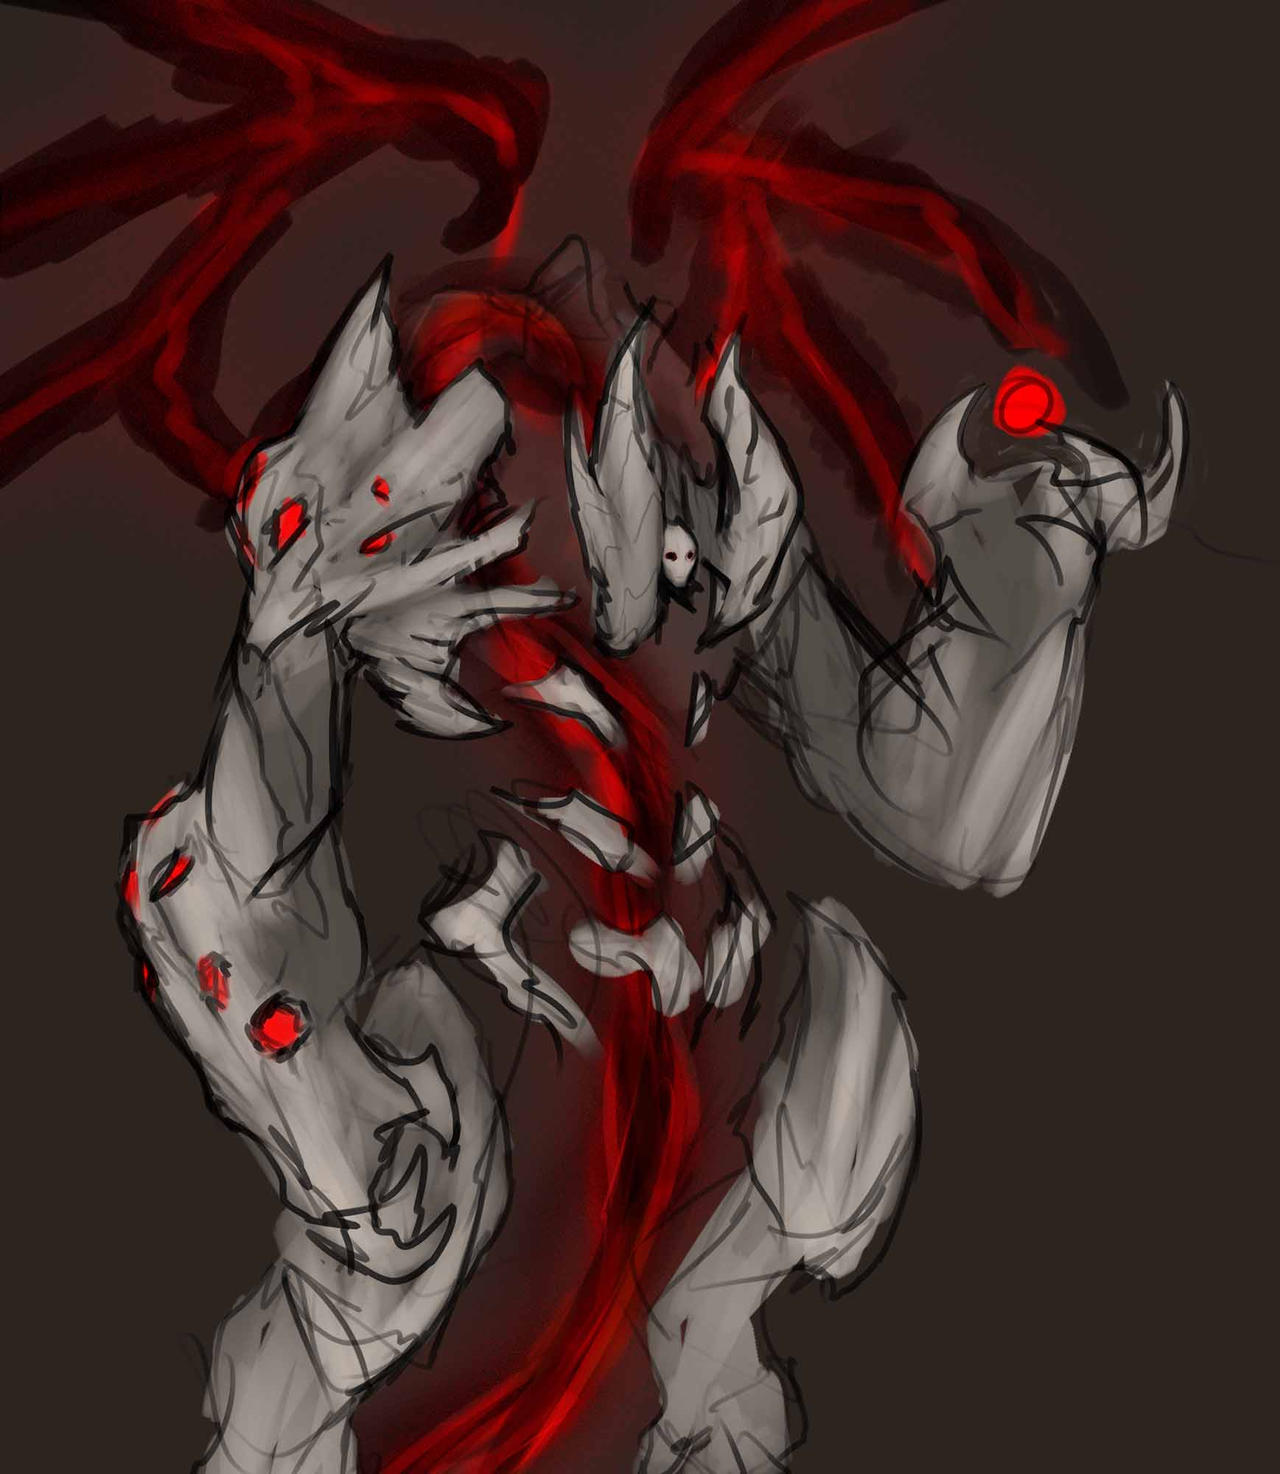 Darksiders -- Lucifer by DerTodesbote on DeviantArt